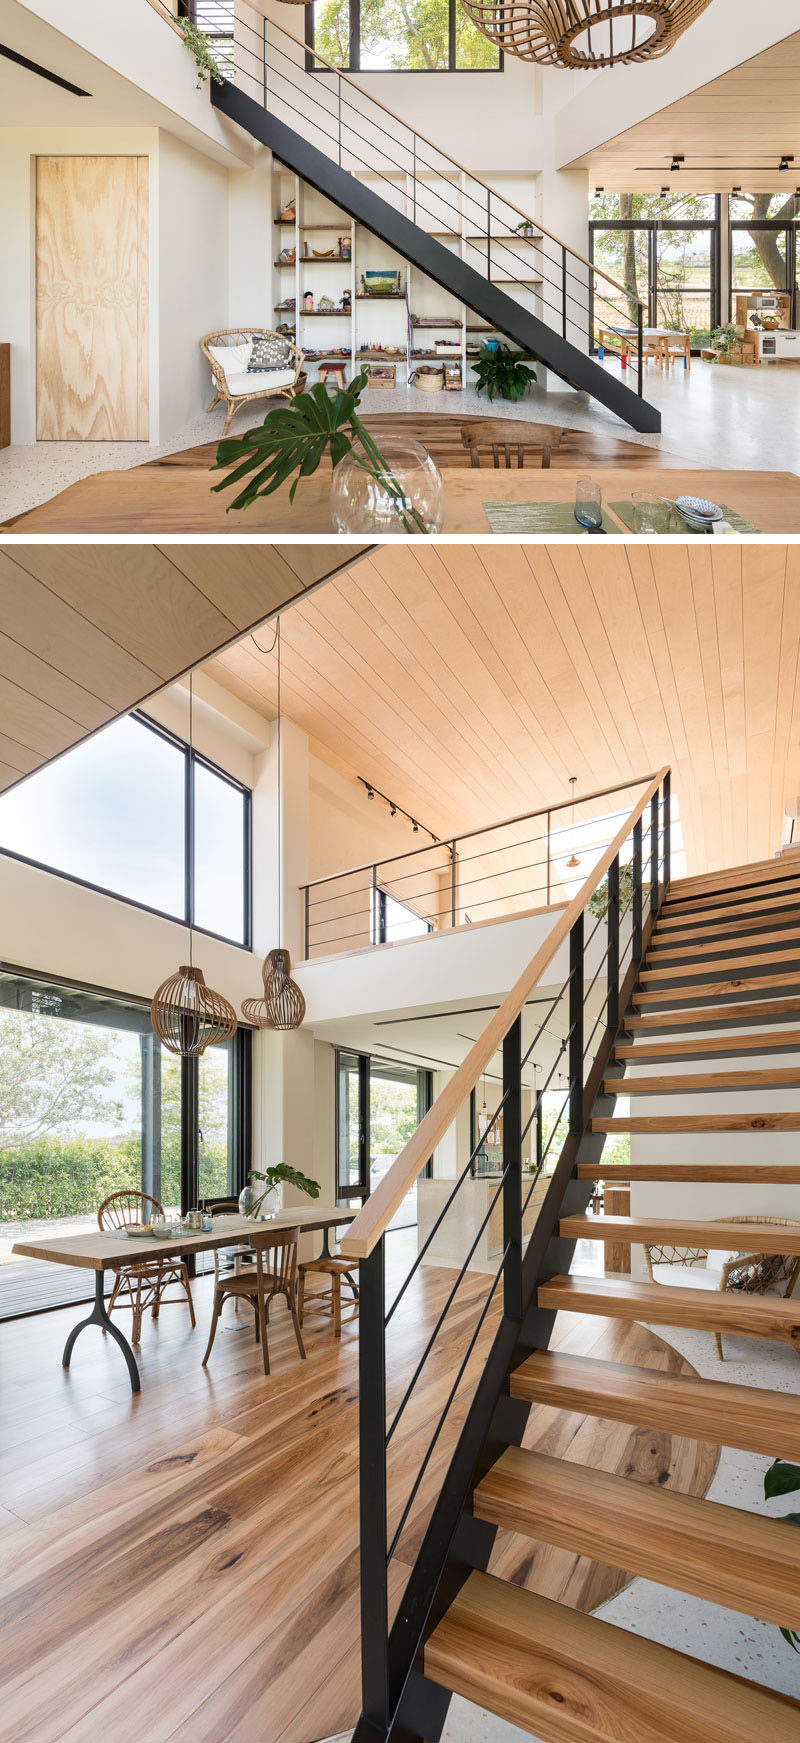 This modern house has steel and wood stairs that lead up to a lofted studio space. #Stairs #ModernStairs